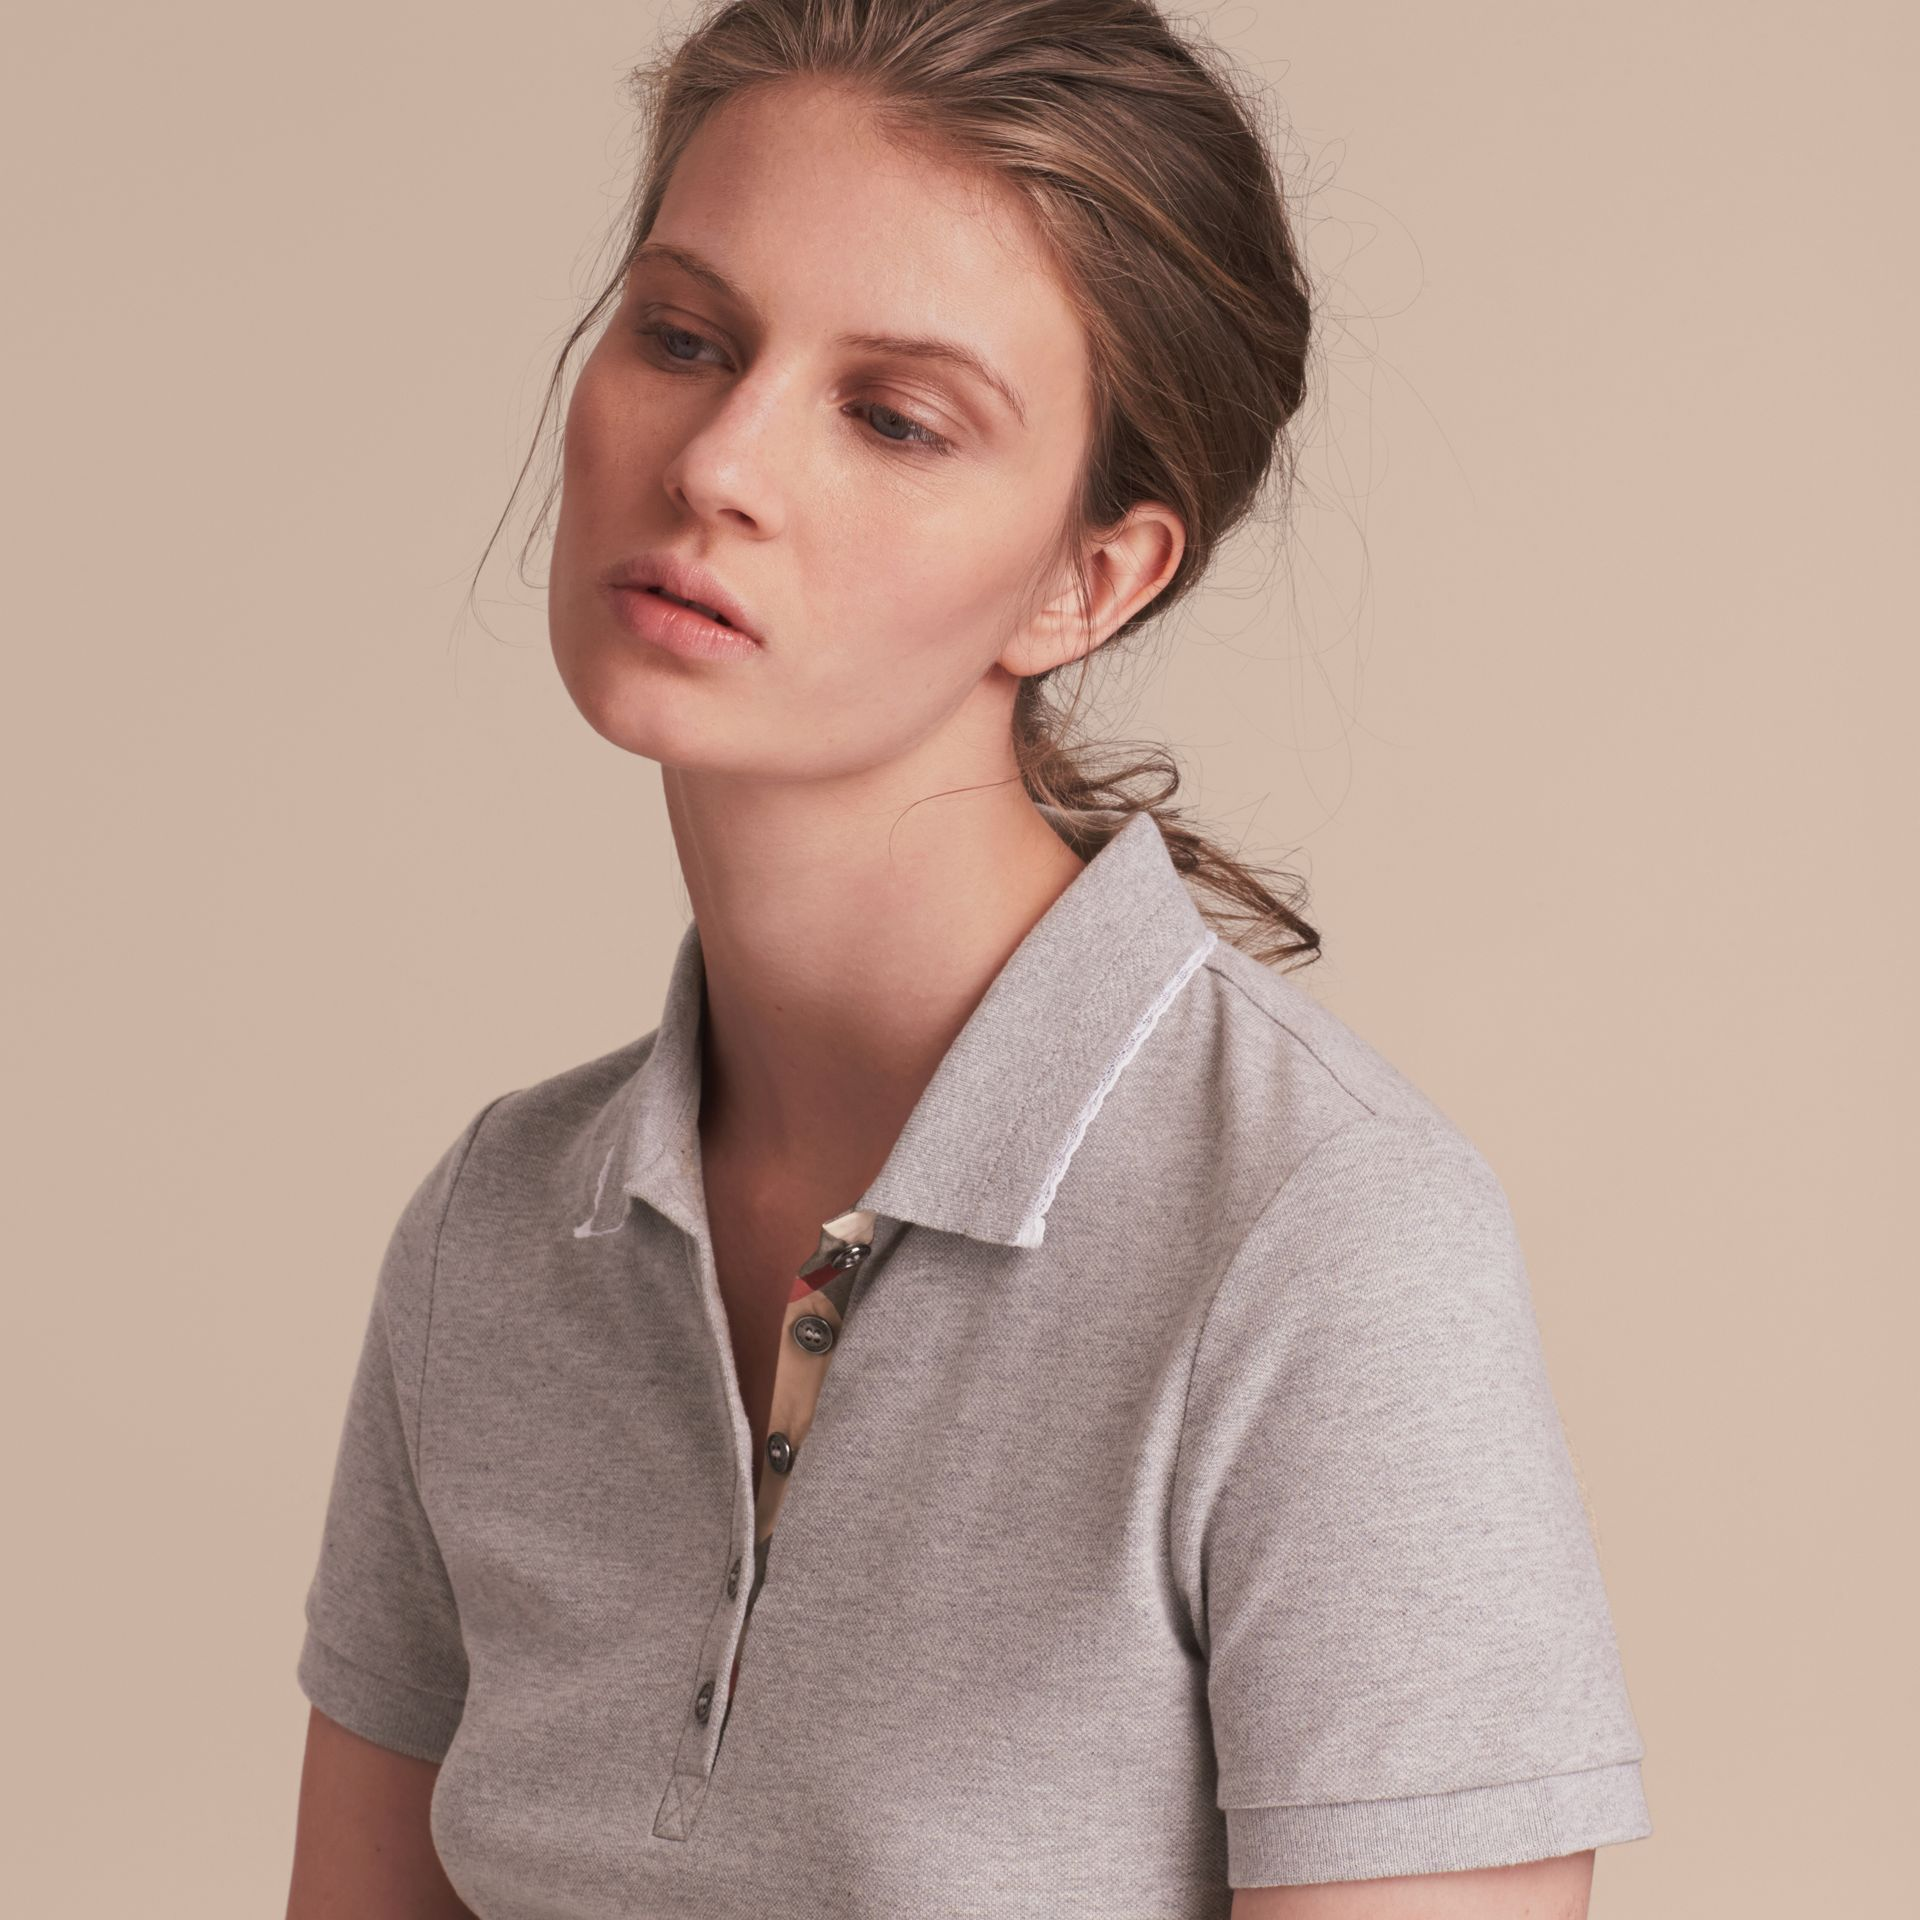 Lace Trim Cotton Blend Polo Shirt with Check Detail in Pale Grey Melange - Women | Burberry Australia - gallery image 5